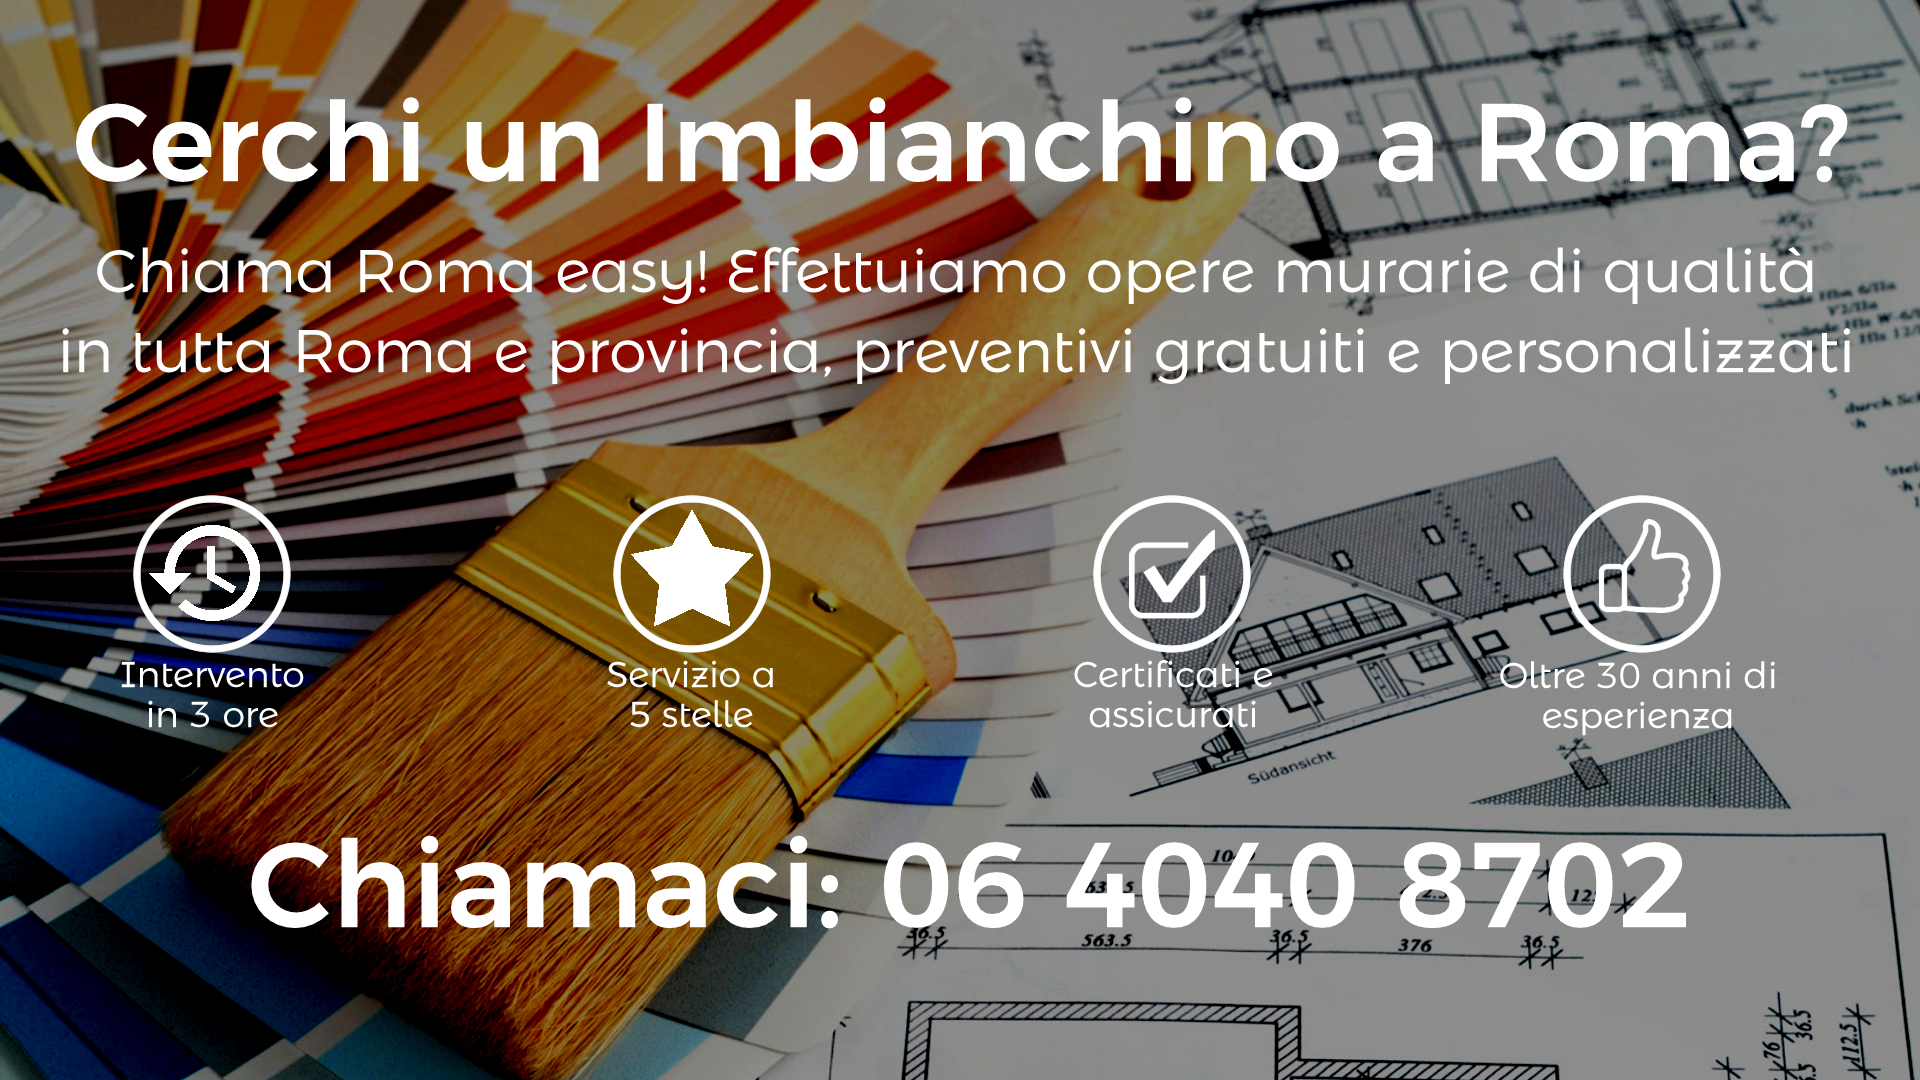 Imbianchino Roma easy